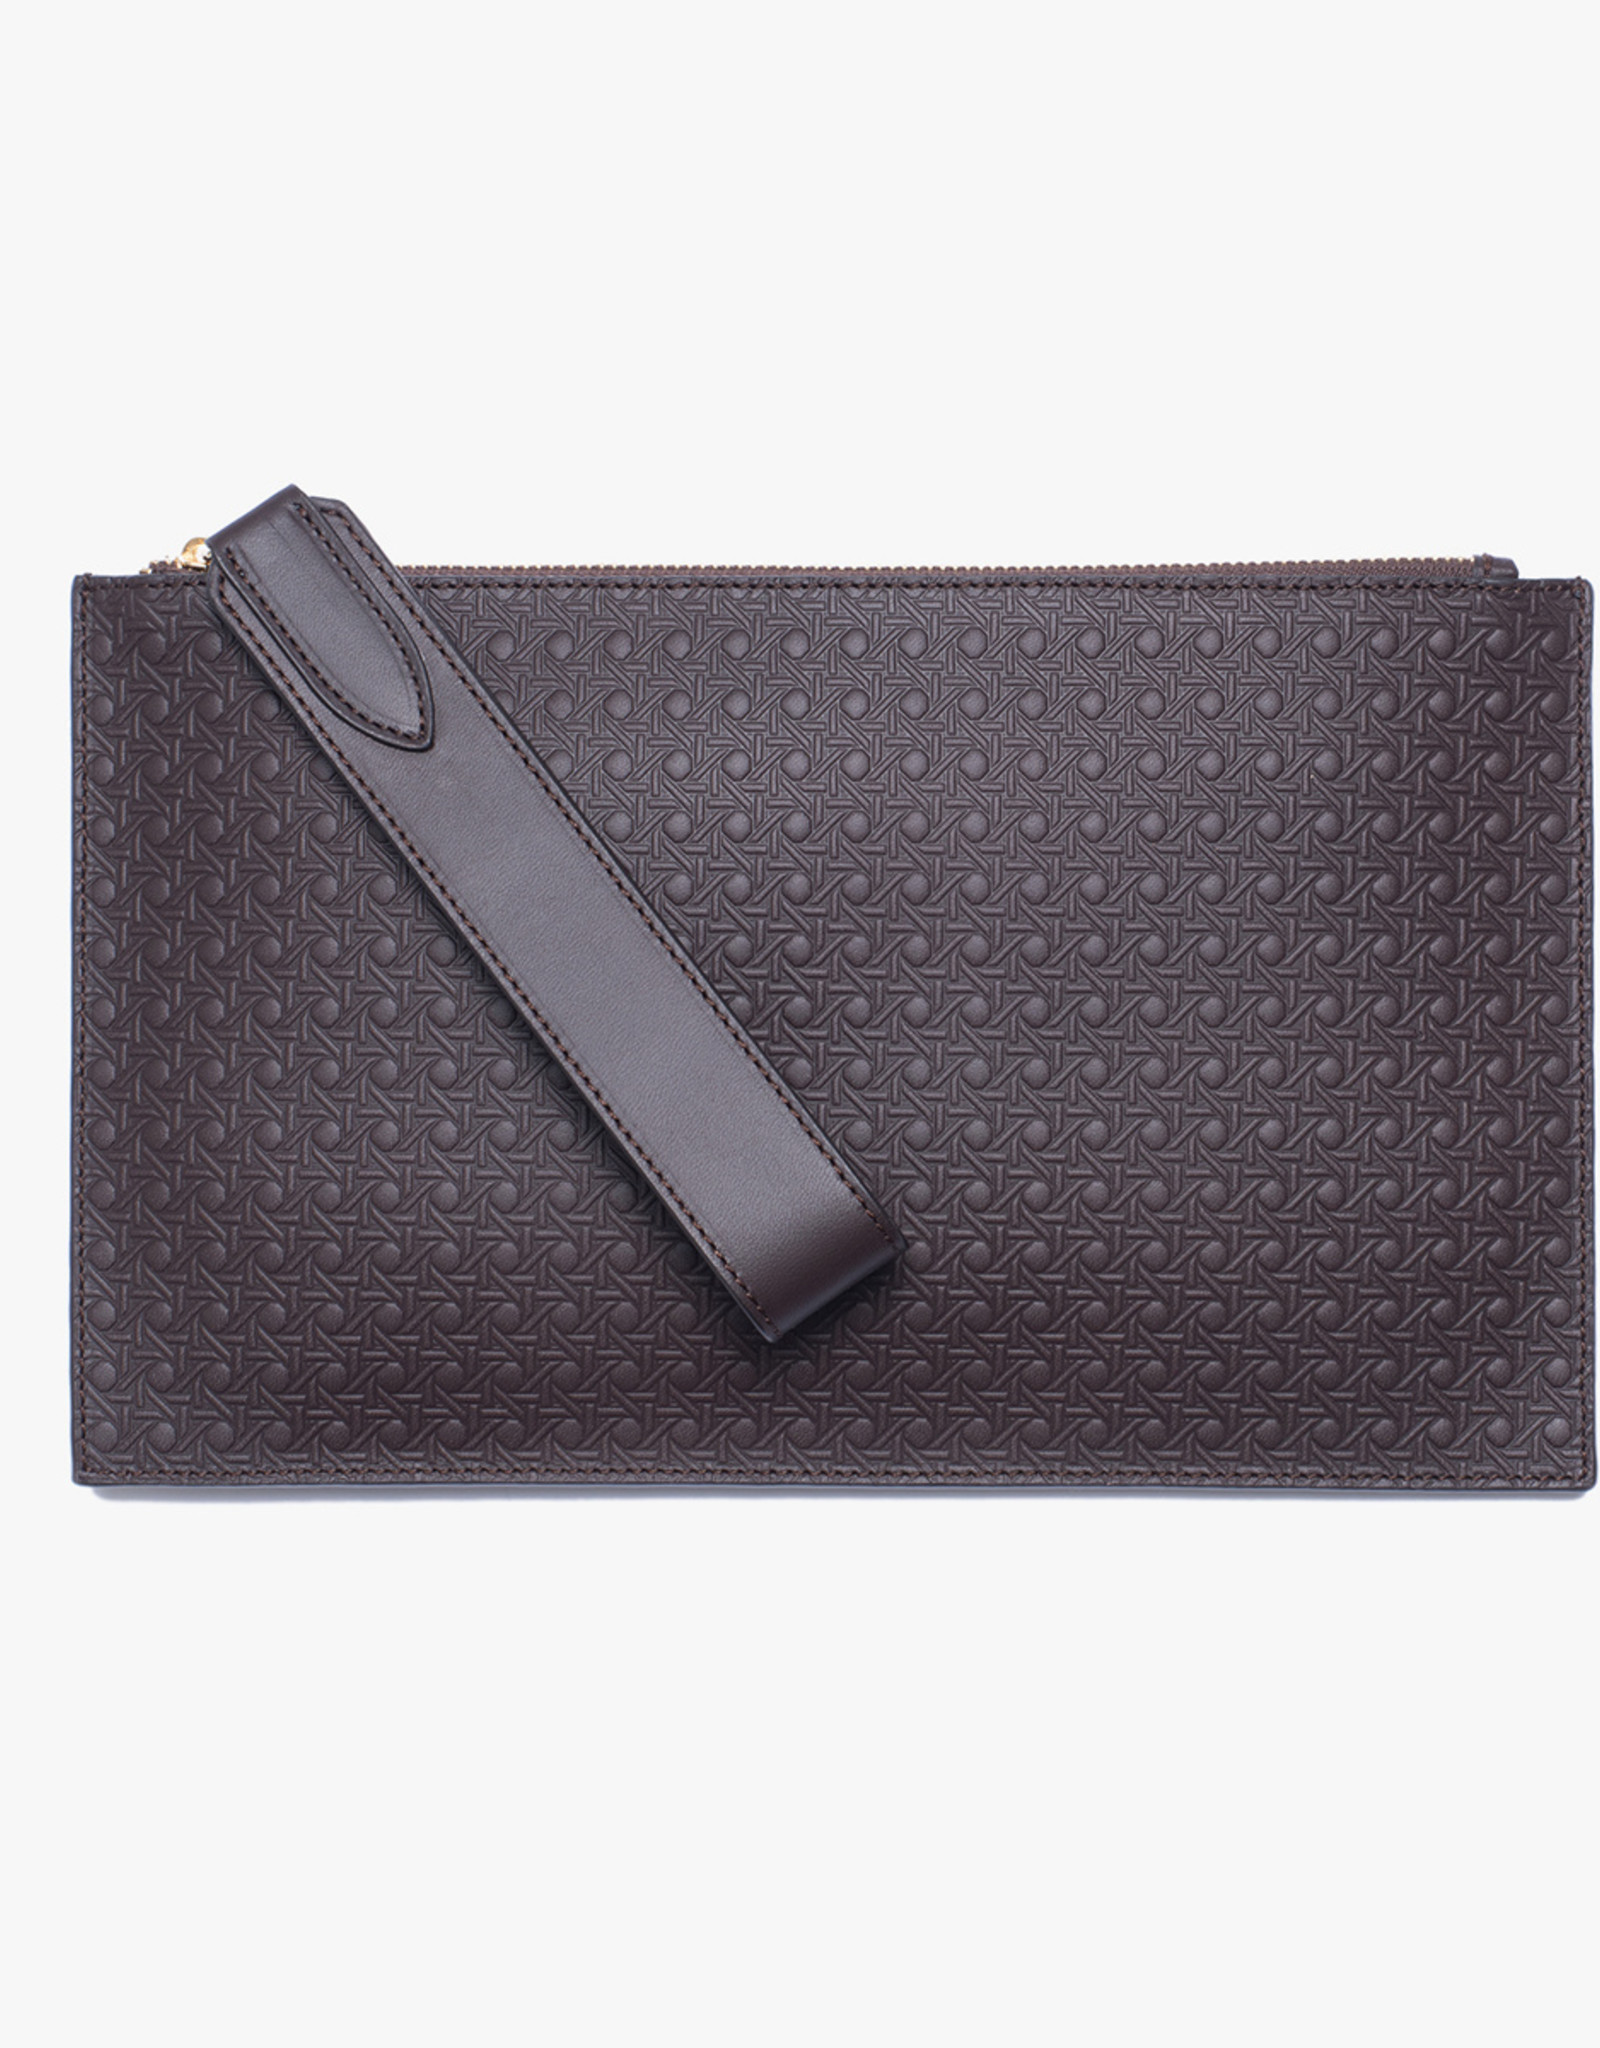 Flat Clutch Rattan Embossed by Palmgrens | Dark brown leather